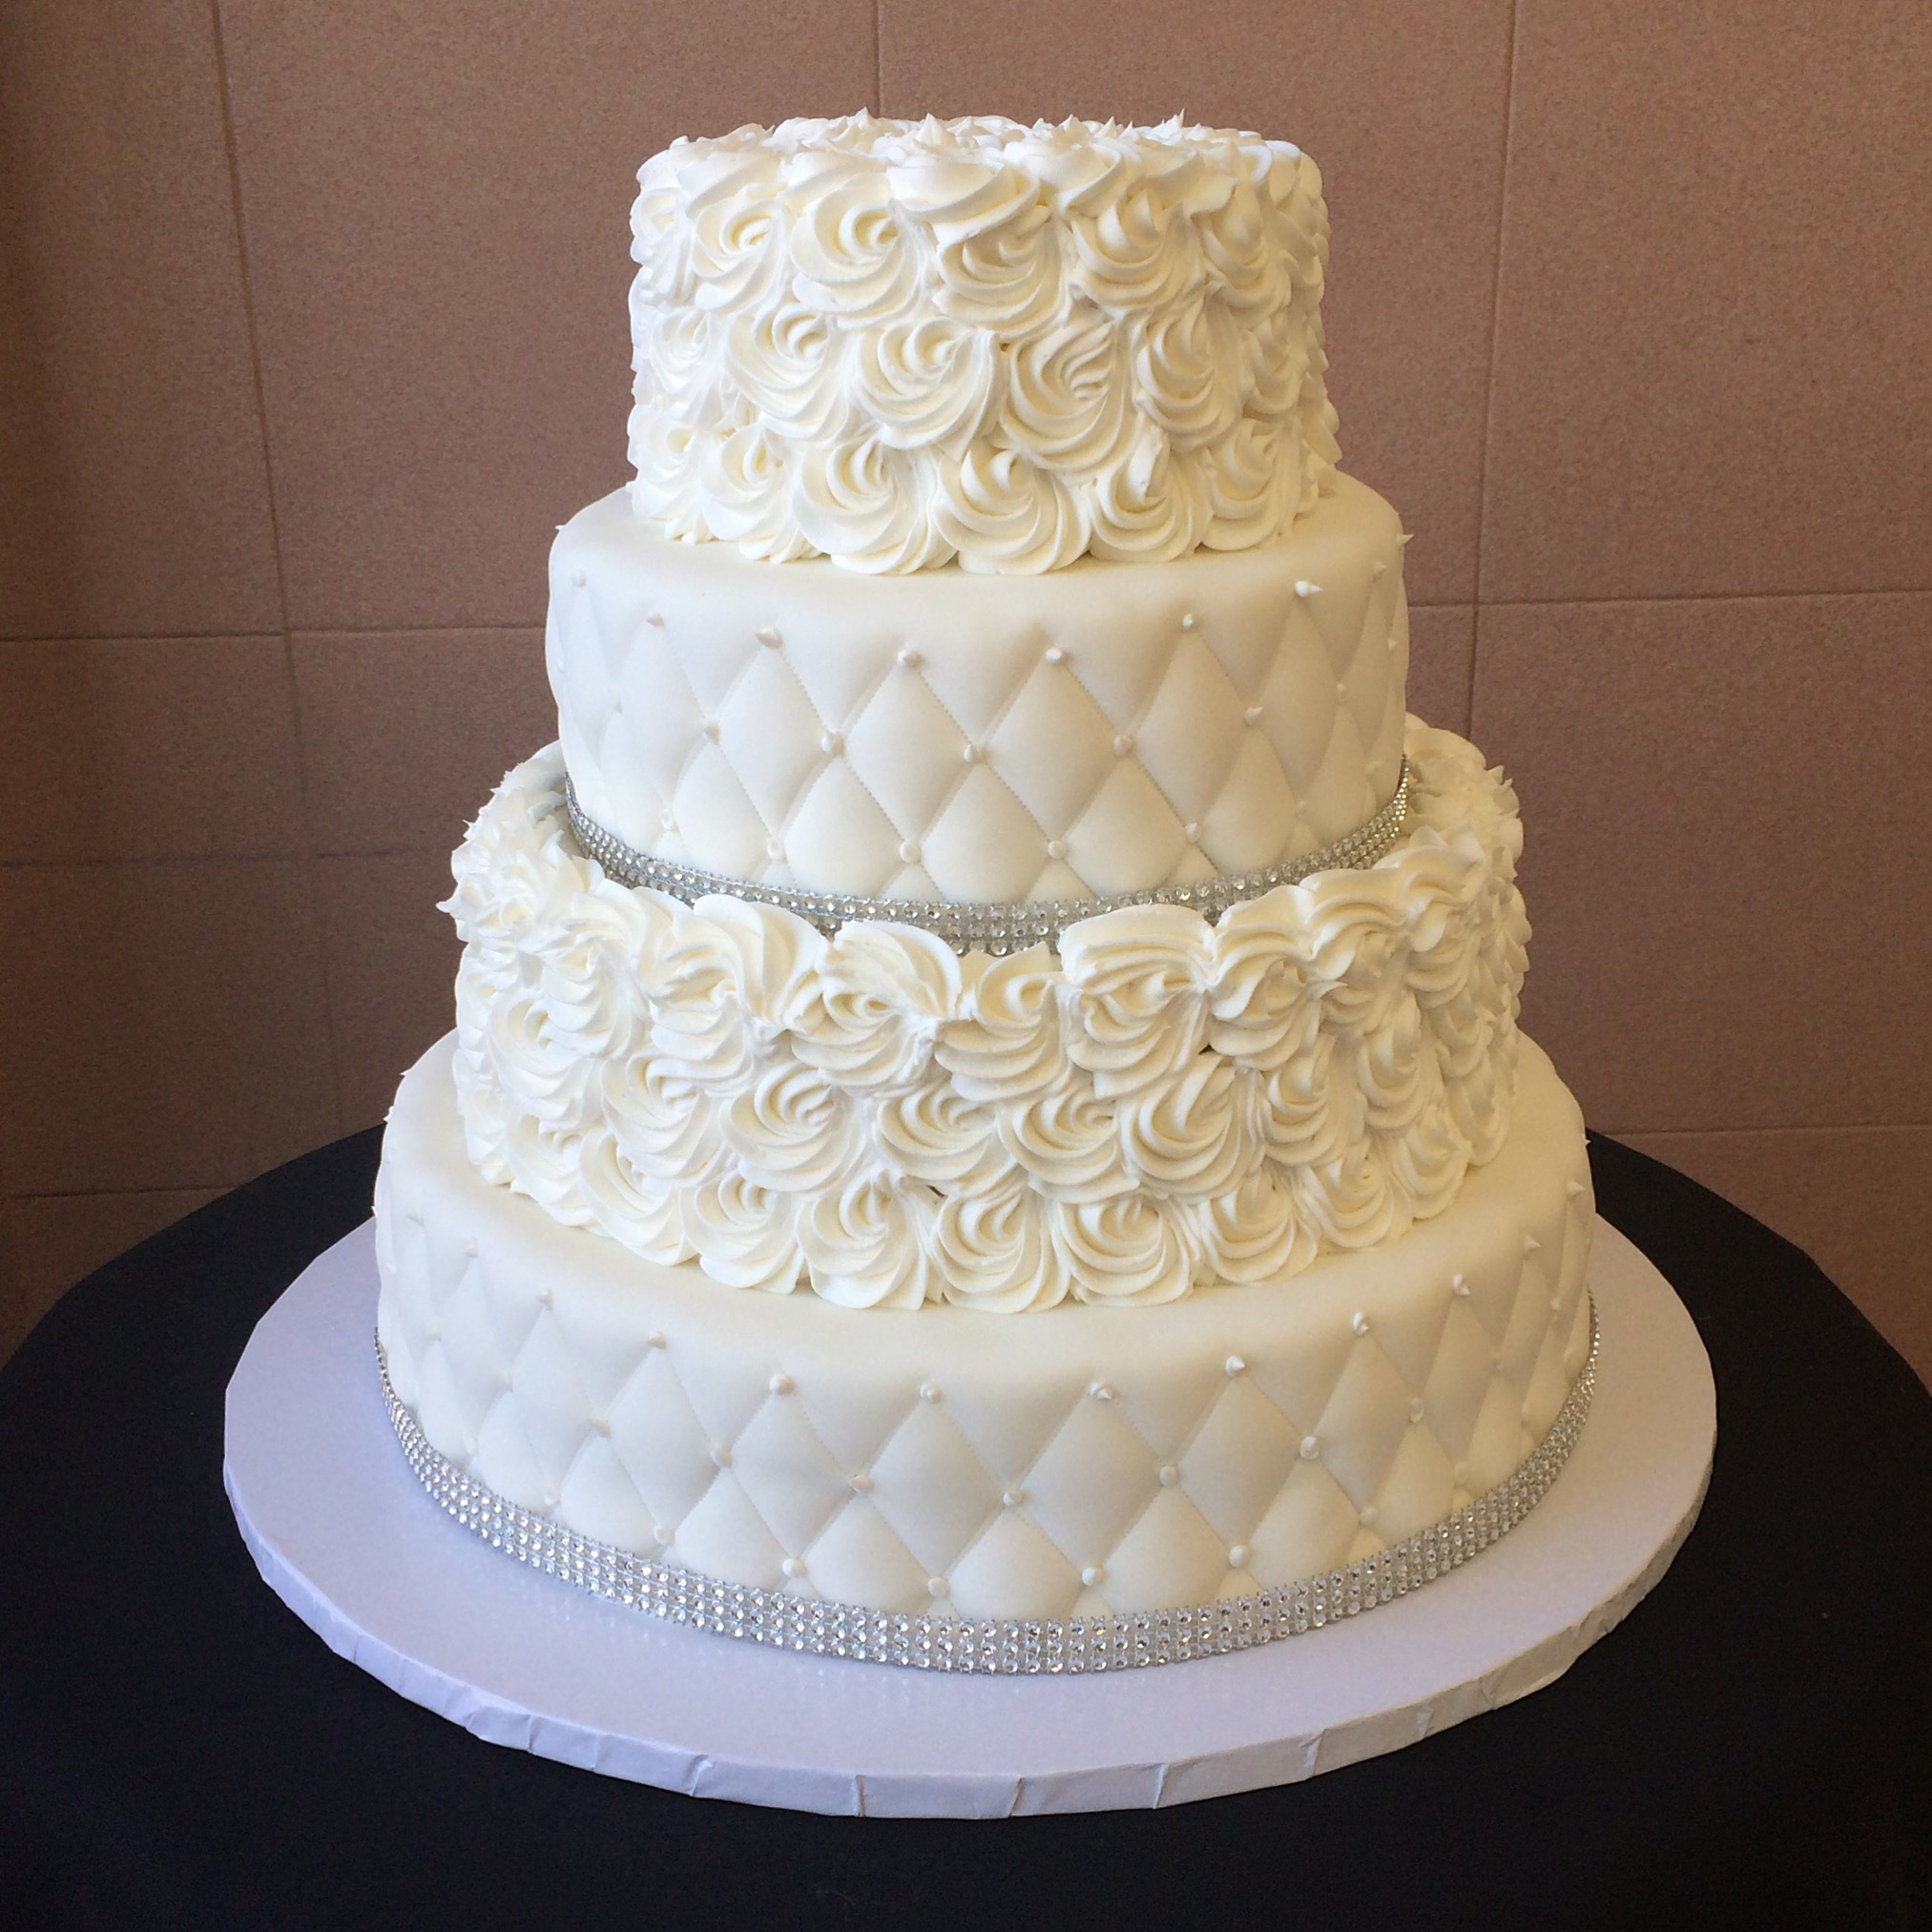 White Rolled Fondant Quilted with Faux Crystals. Alternating with Large Butter Cream Rosettes.jpg